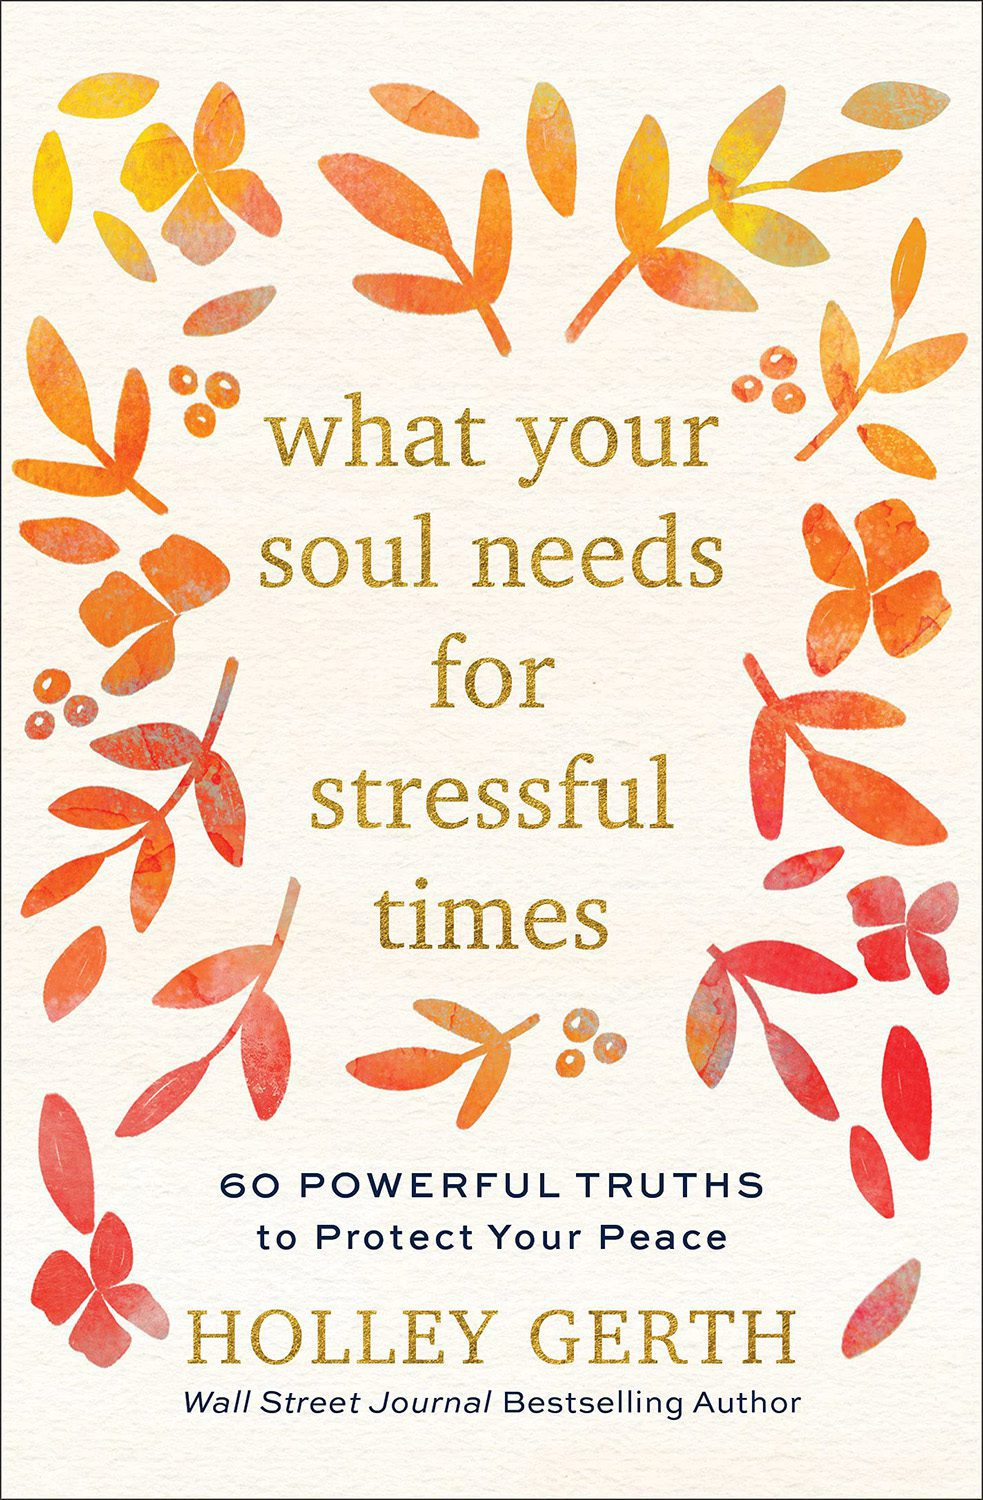 What Your Soul Needs for Stressful Times- 60 Powerful Truths to Protect Your Peace